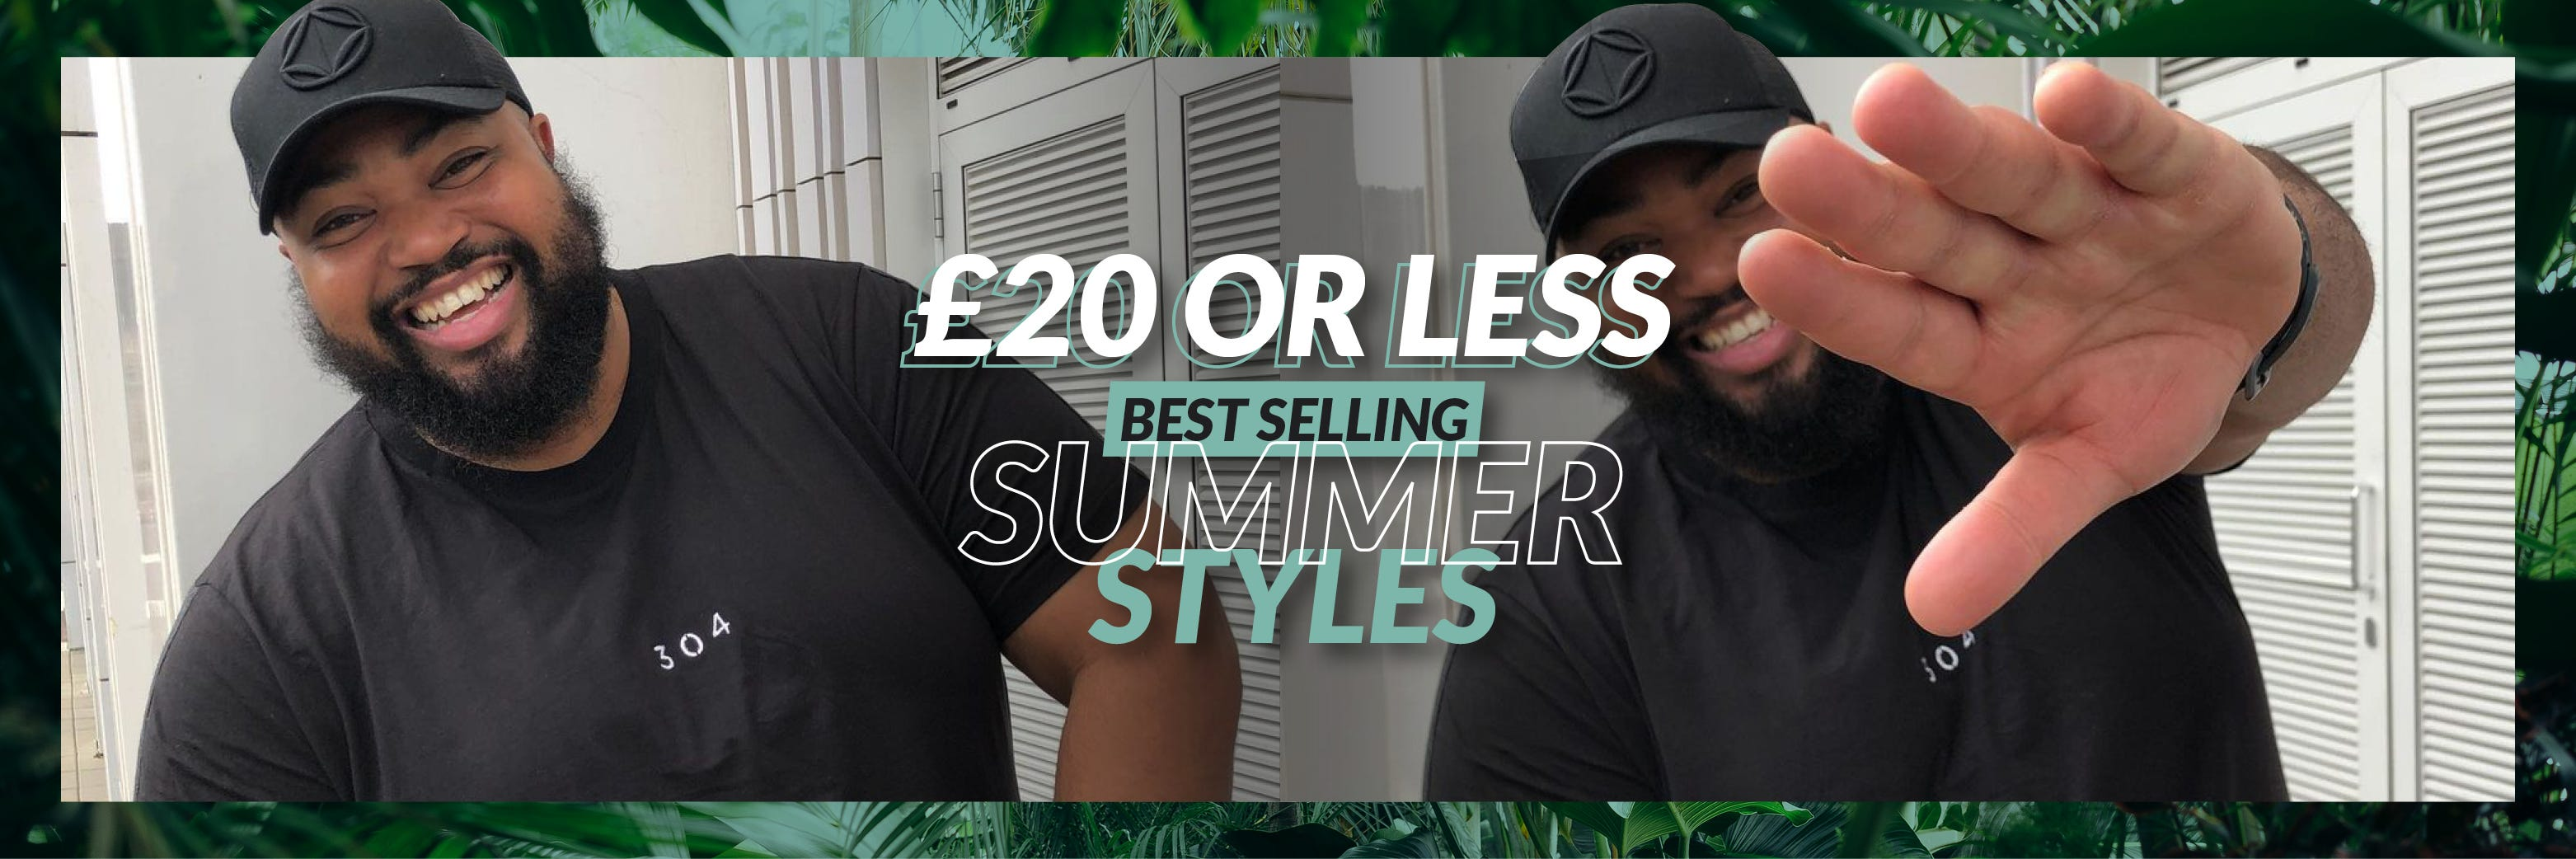 £20 OR LESS